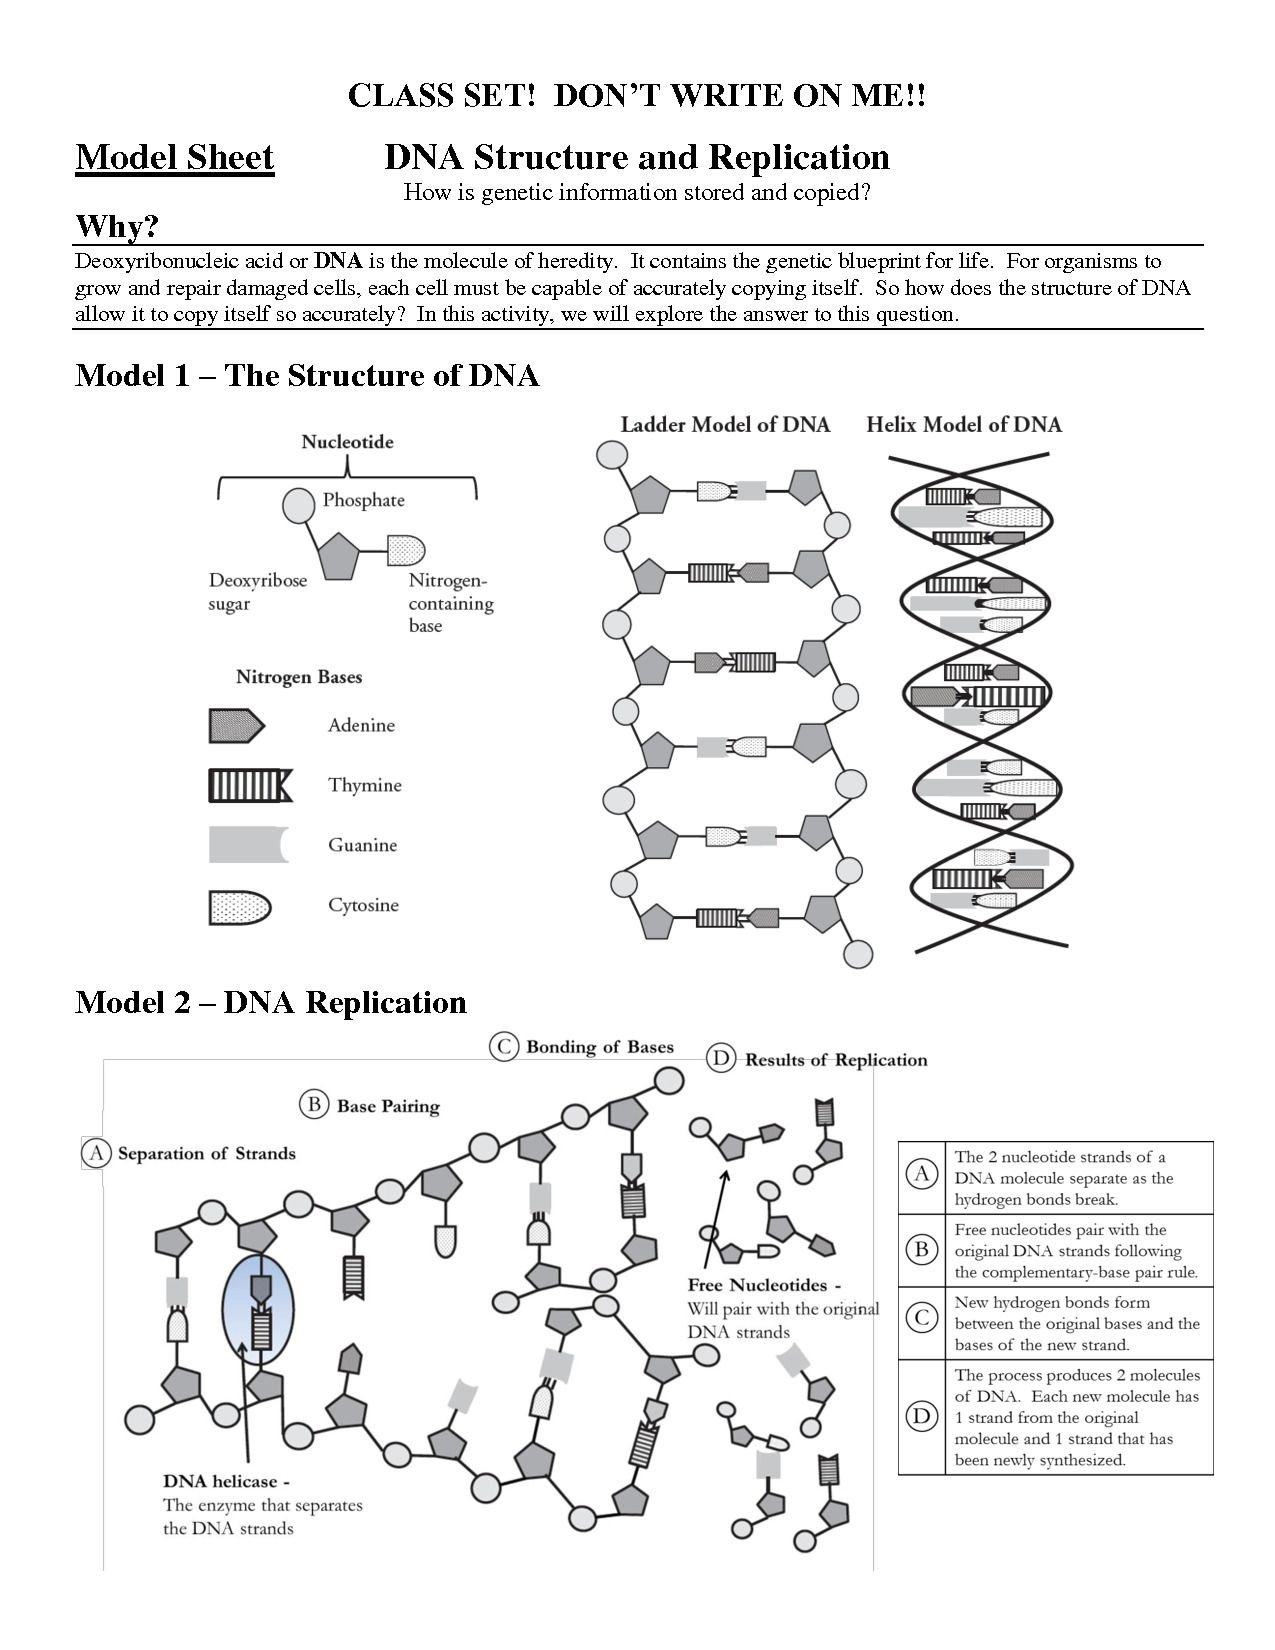 Structure Of Dna And Replication Worksheet Answers  Briefencounters Throughout Structure Of Dna And Replication Worksheet Answers